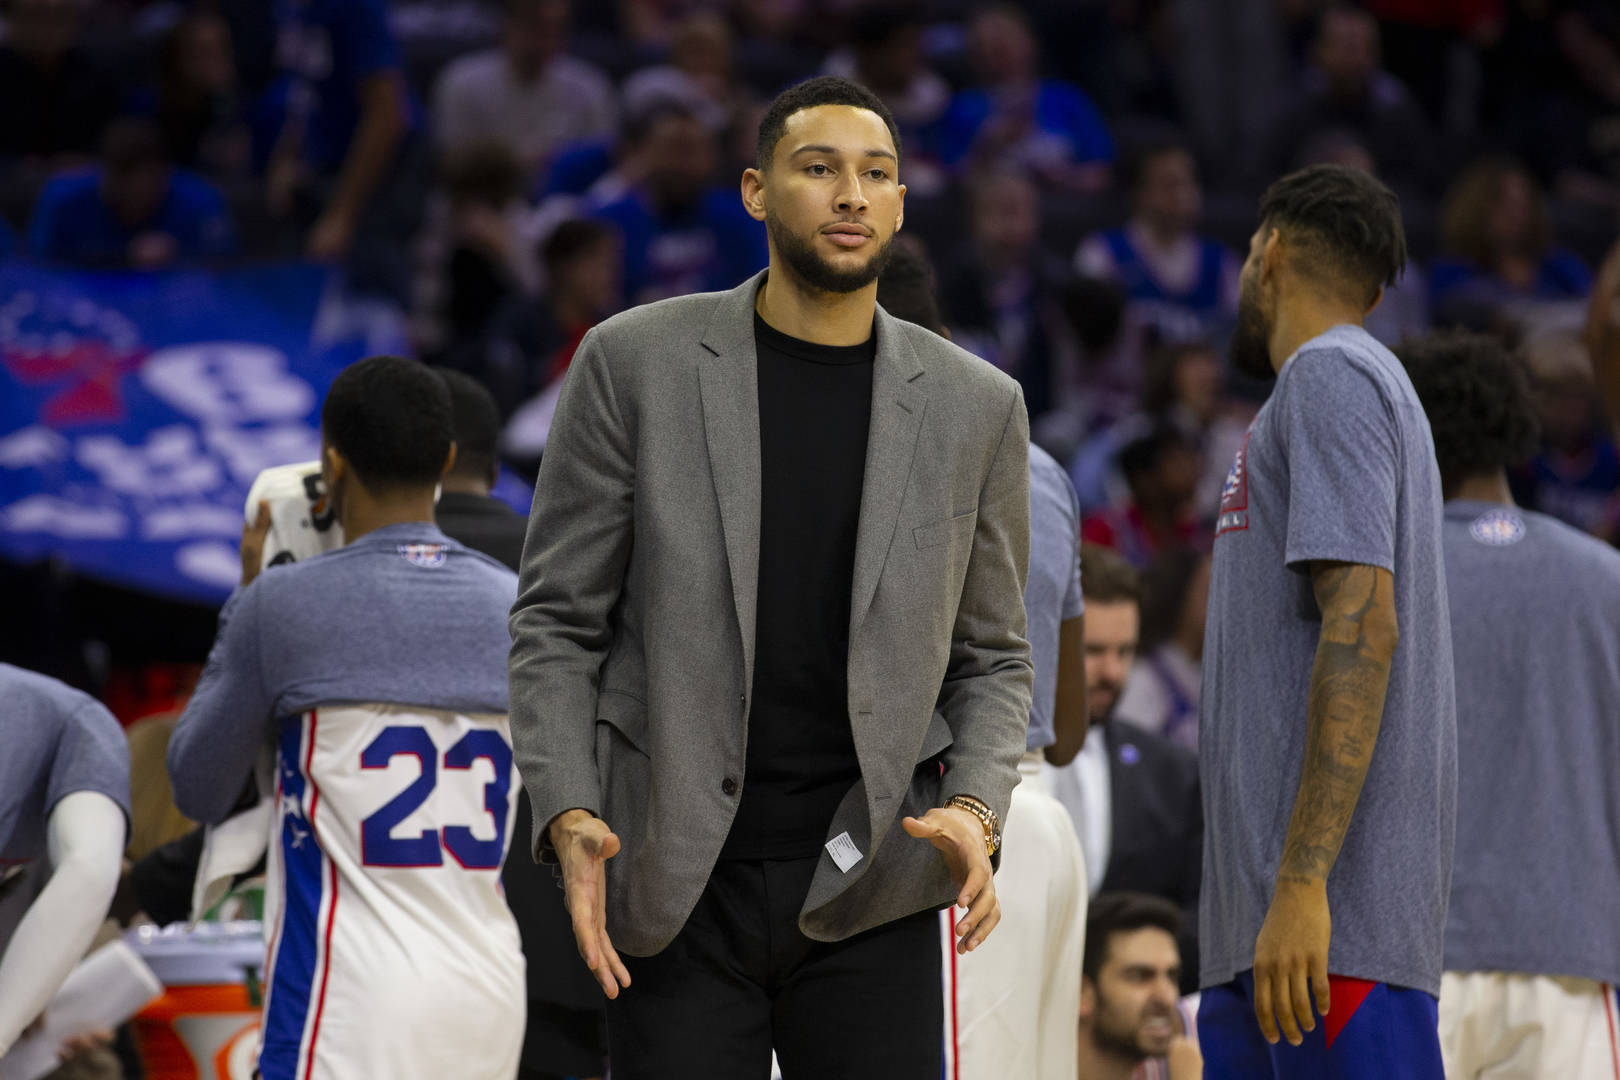 Kendall Jenner Spent New Year's Eve with Ben Simmons